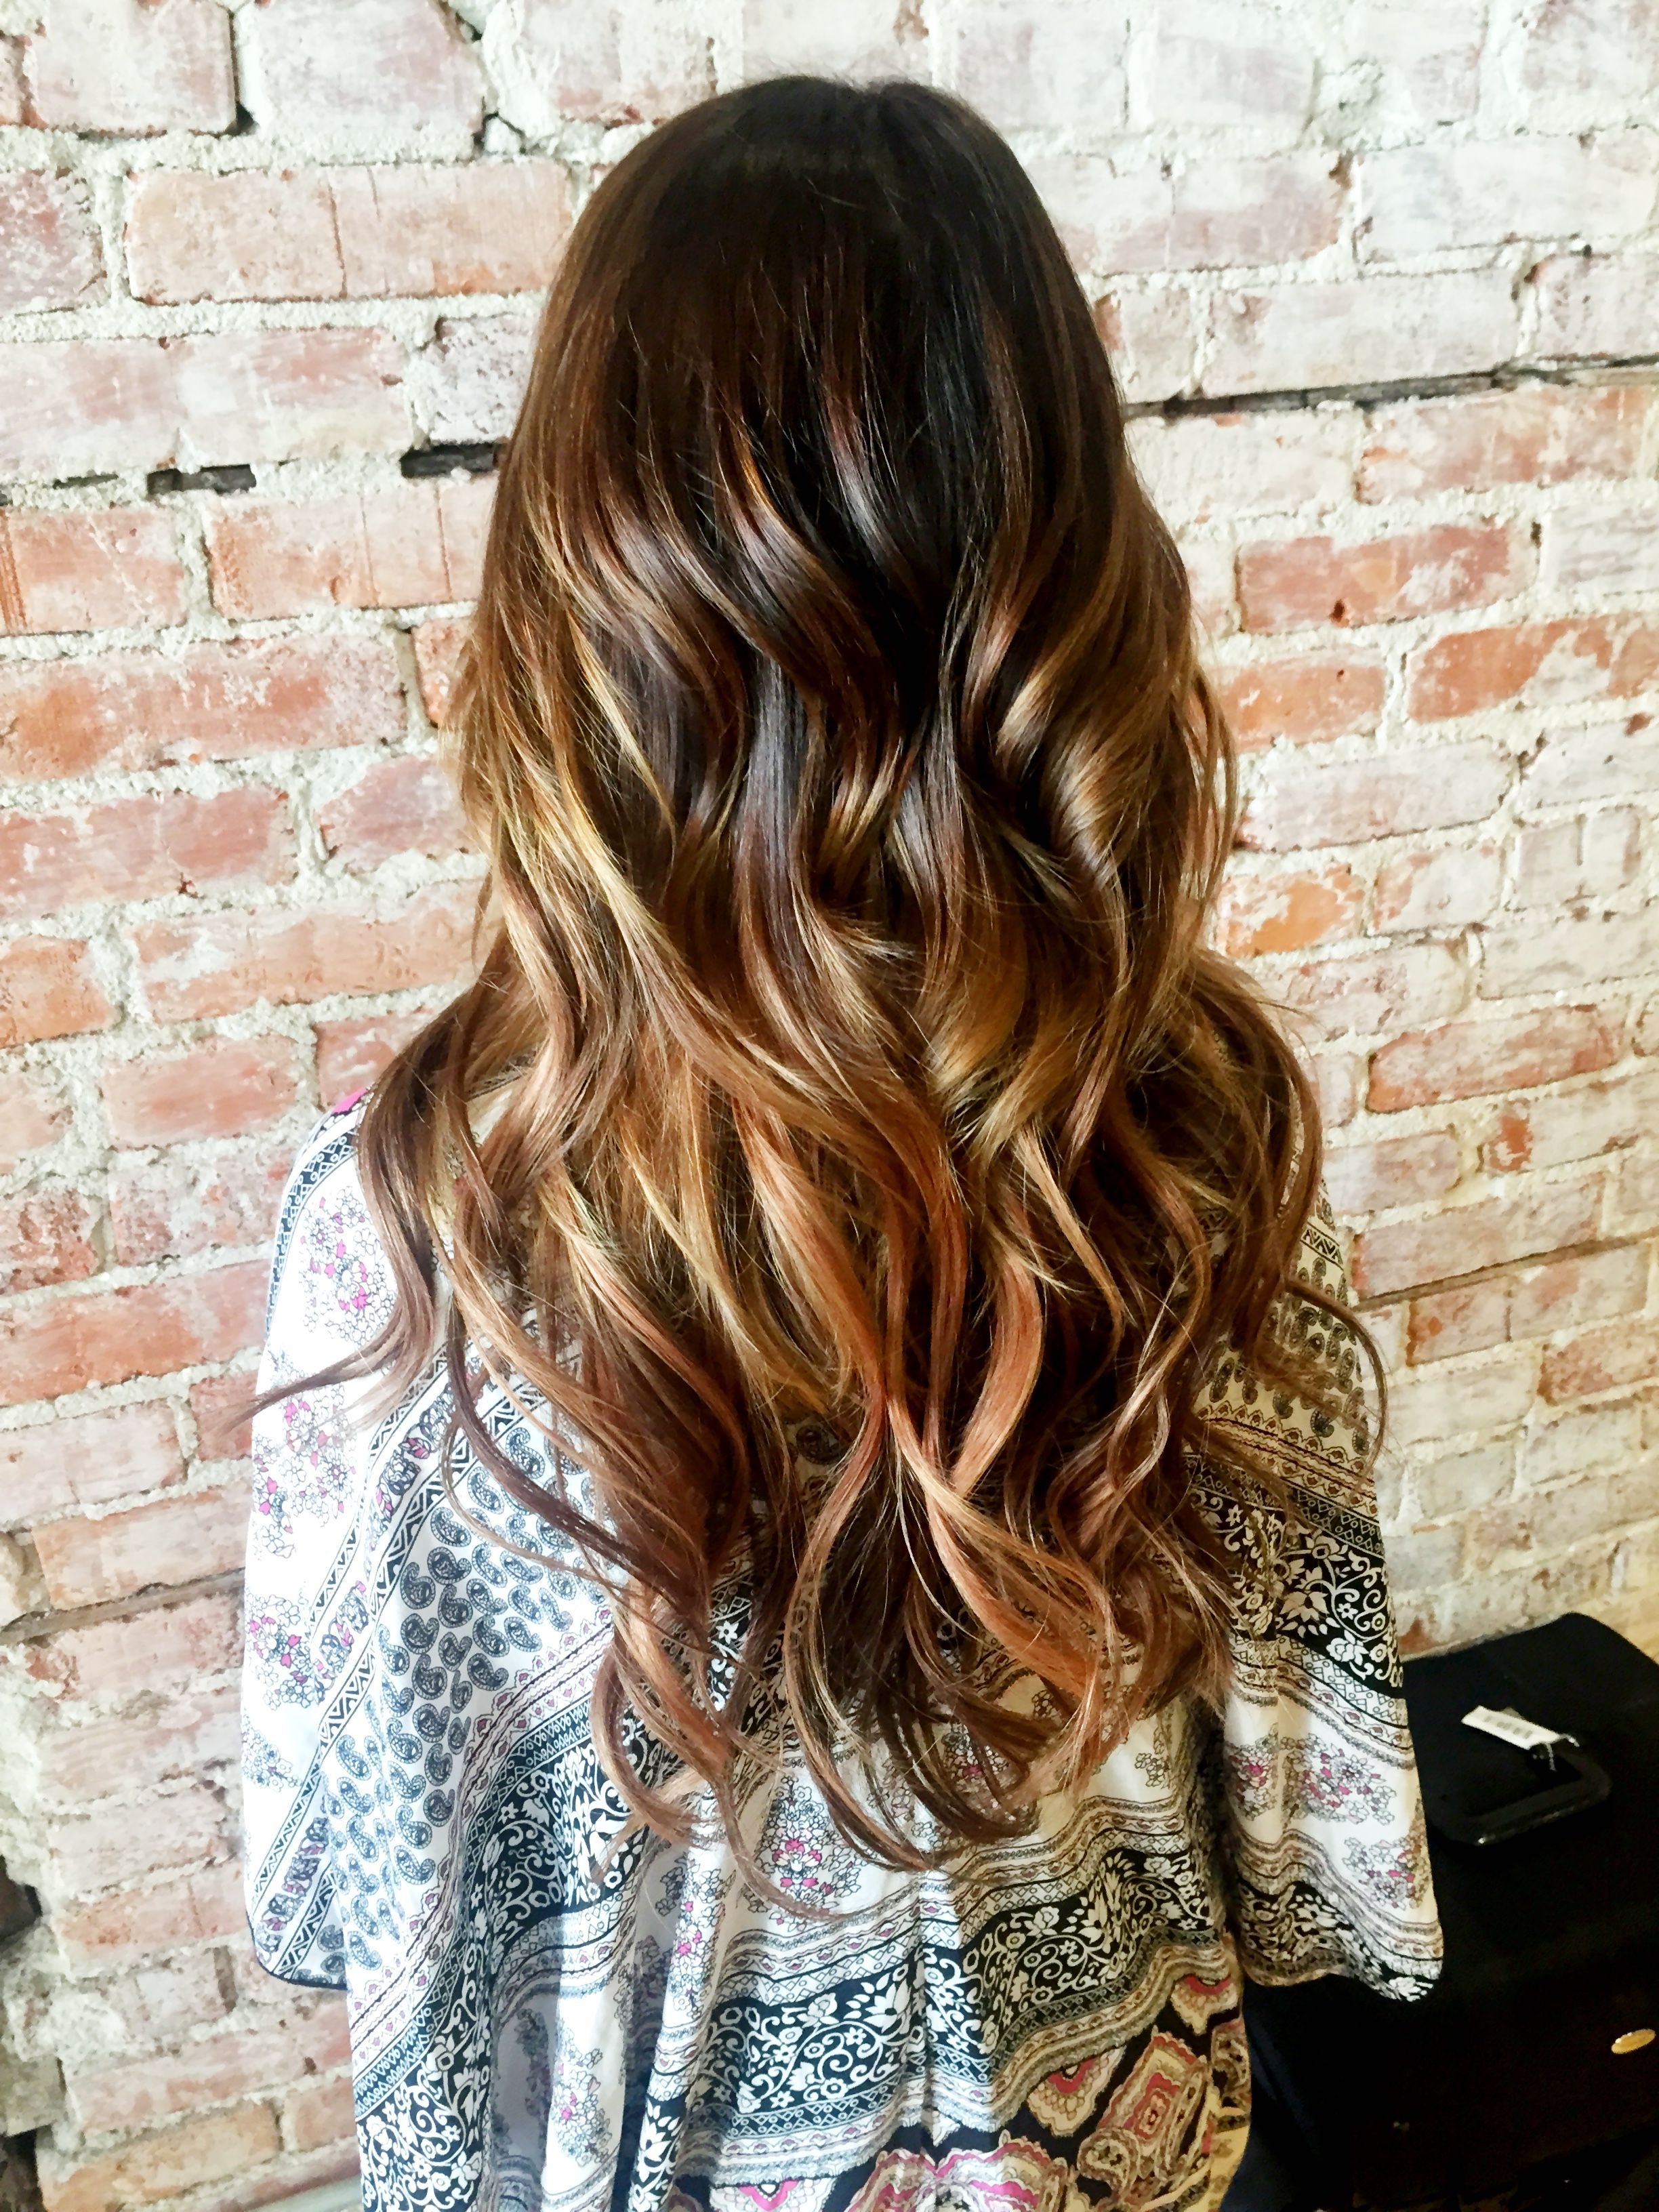 Find About Ombre Hair Style